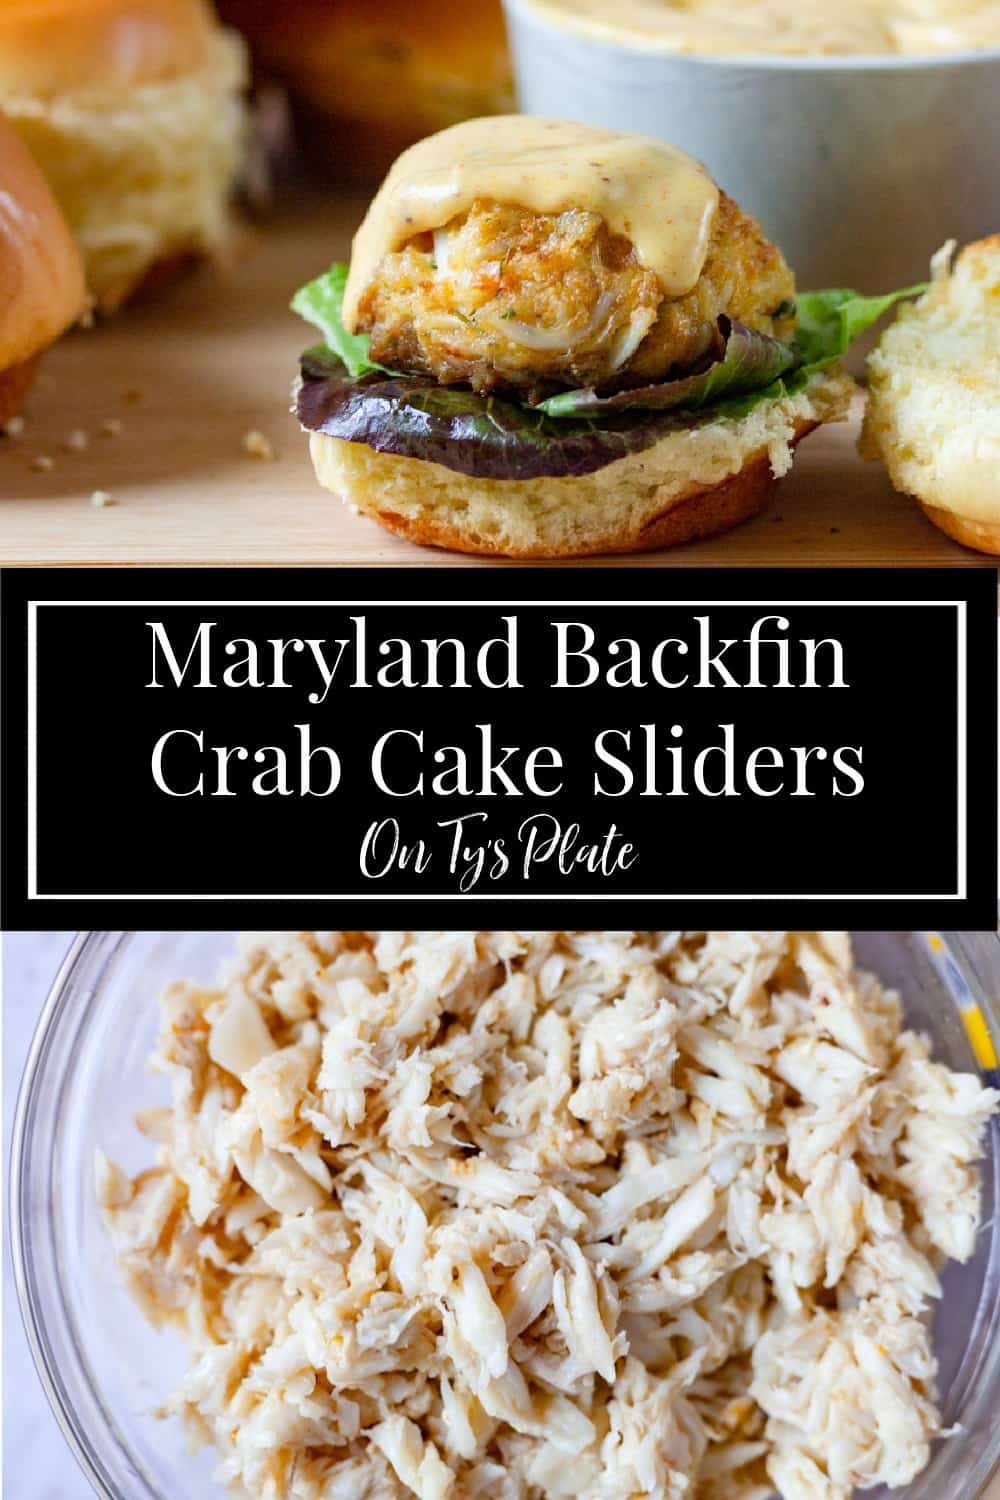 Maryland Backfin Crab Cake Sliders